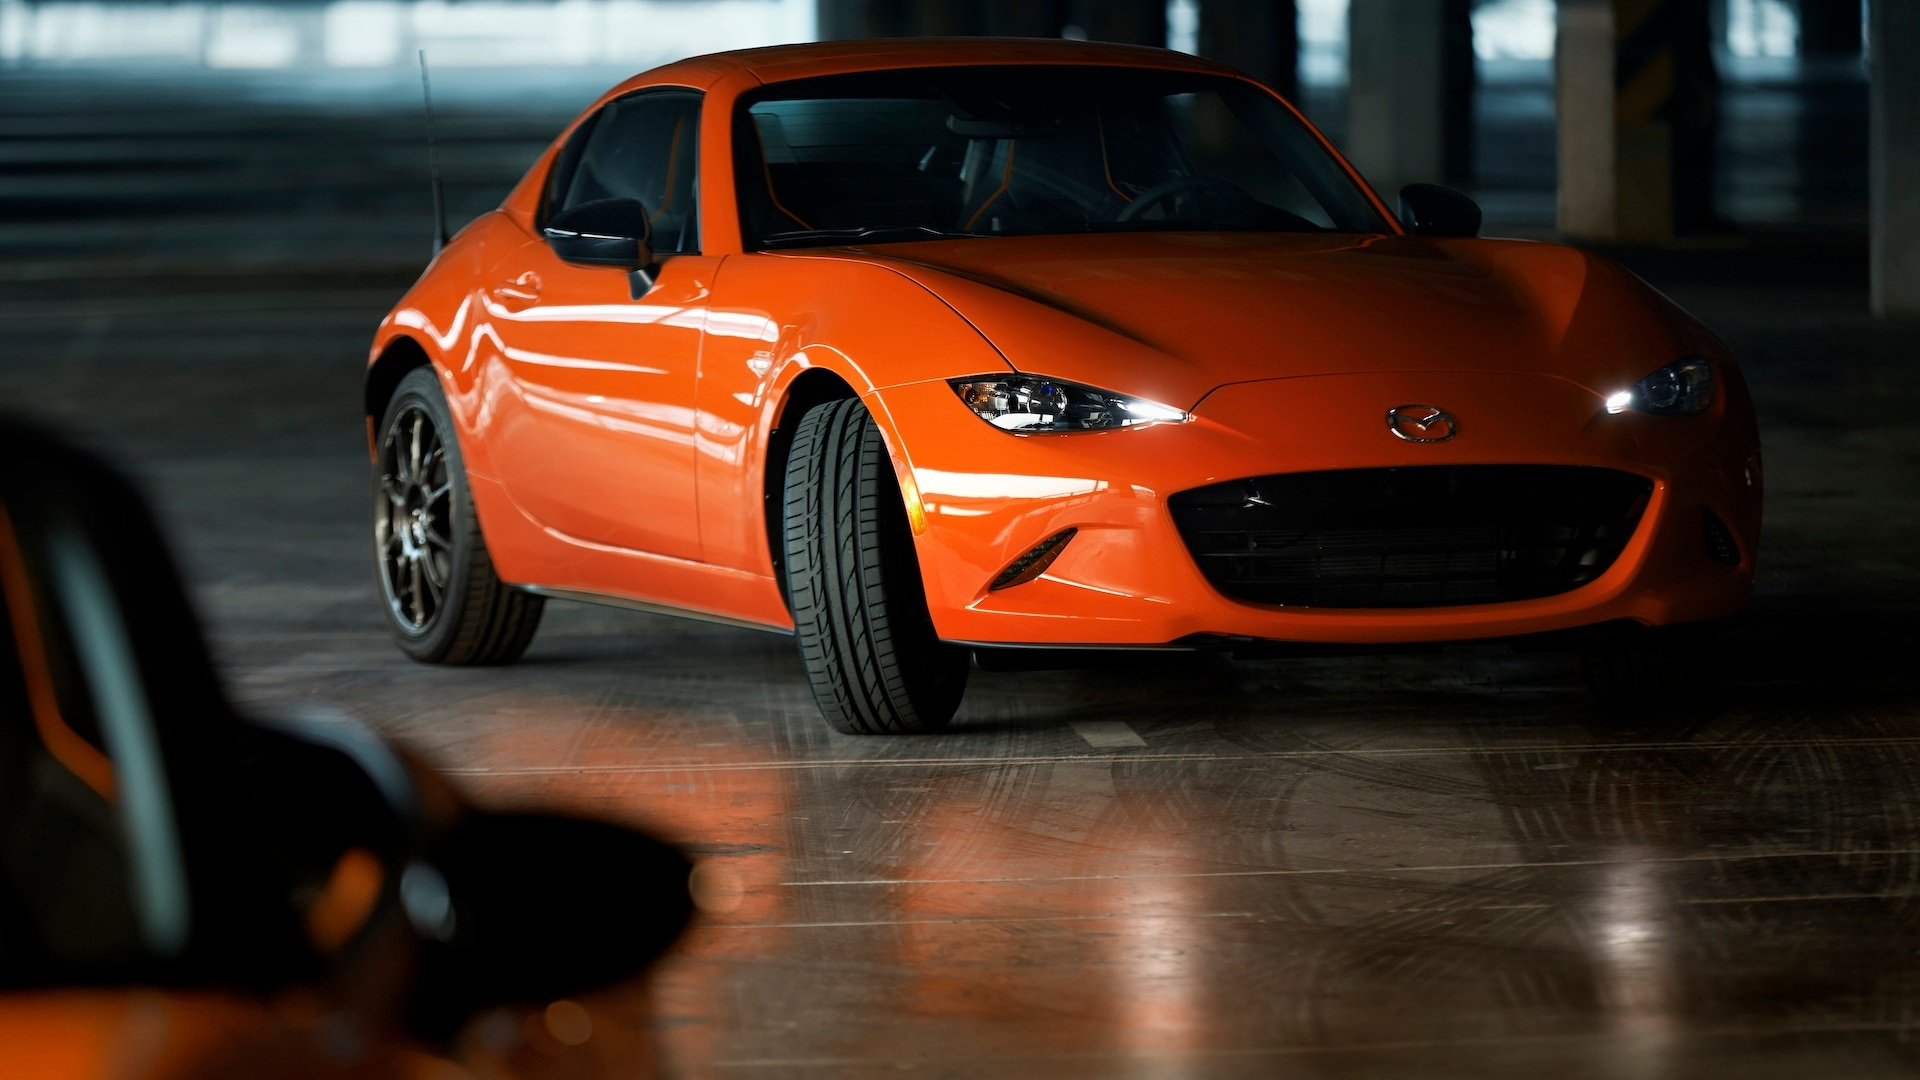 Mazda MX-5 Miata 30th Anniversary Edition: An Orange-Licious Birthday